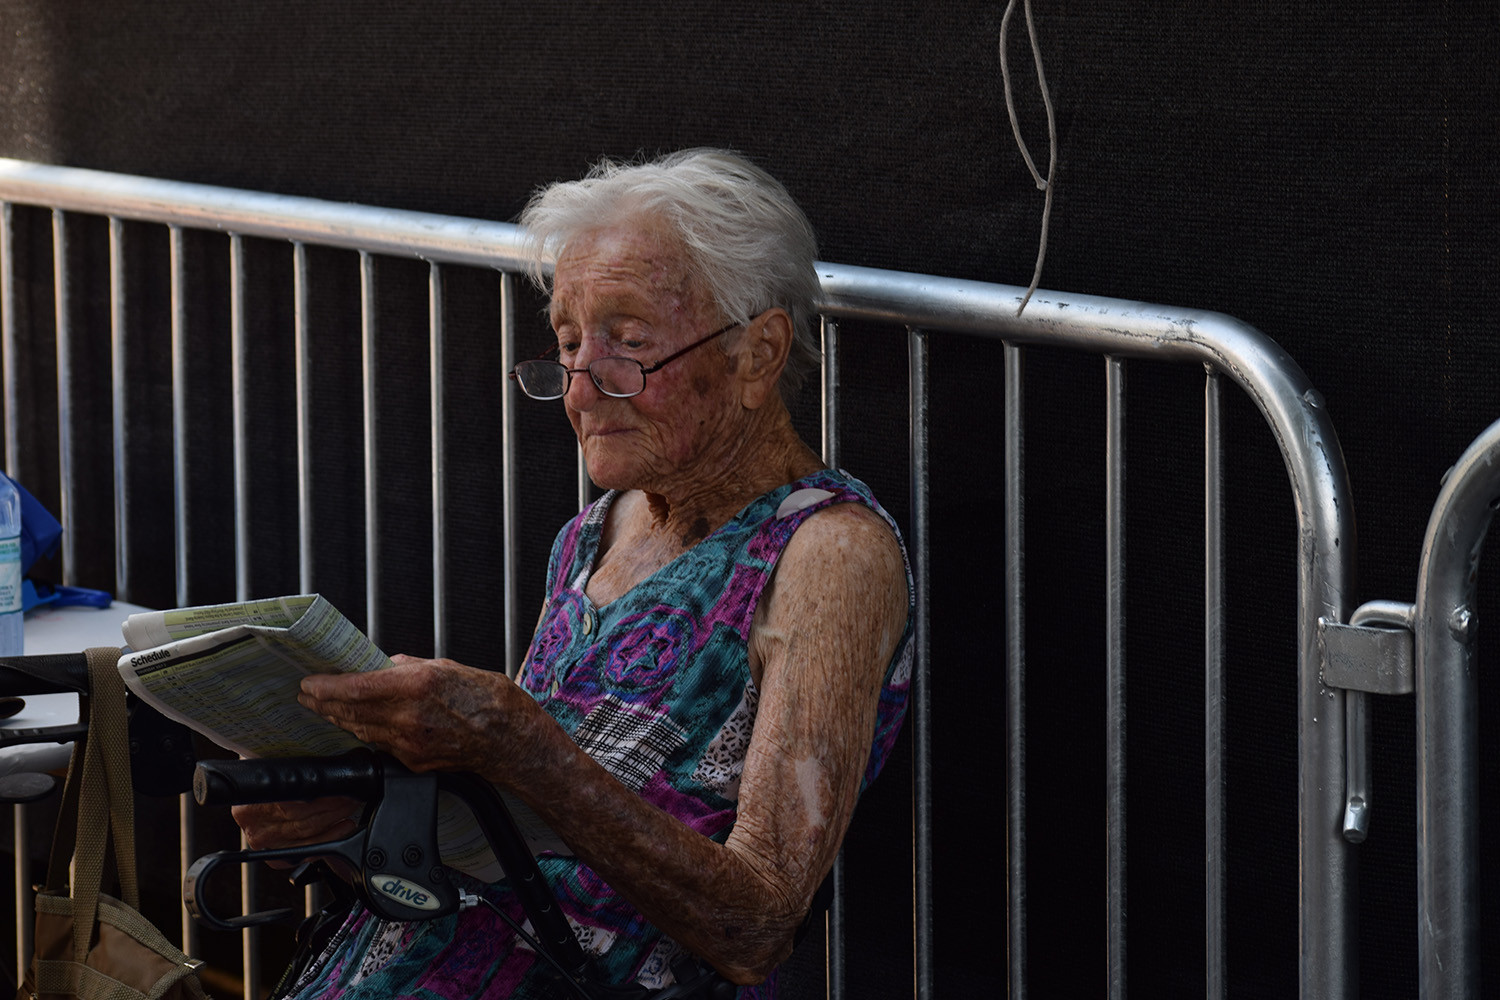 A festival-goer relaxes before the next musical performance with the day's newspaper. Portland, Oregon.